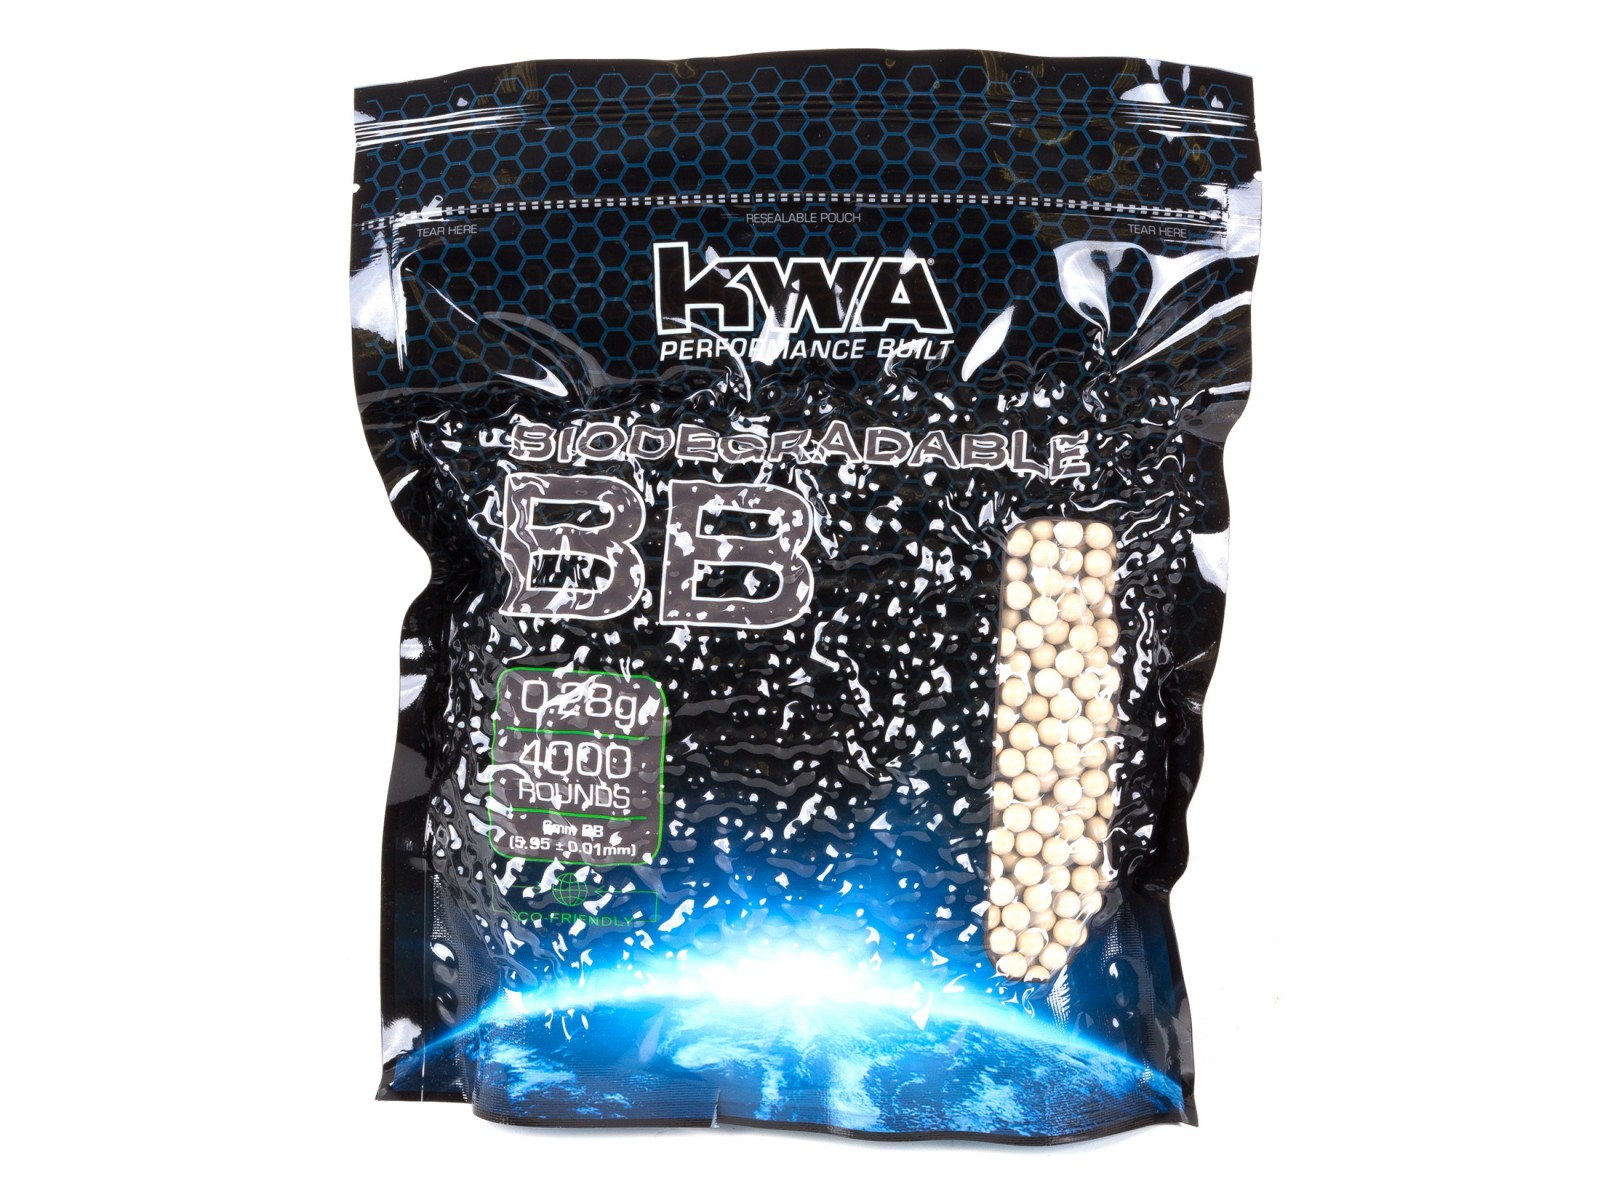 KWA 6mm Biodegradable Airsoft BBs, 0.28g, 4000rds, White